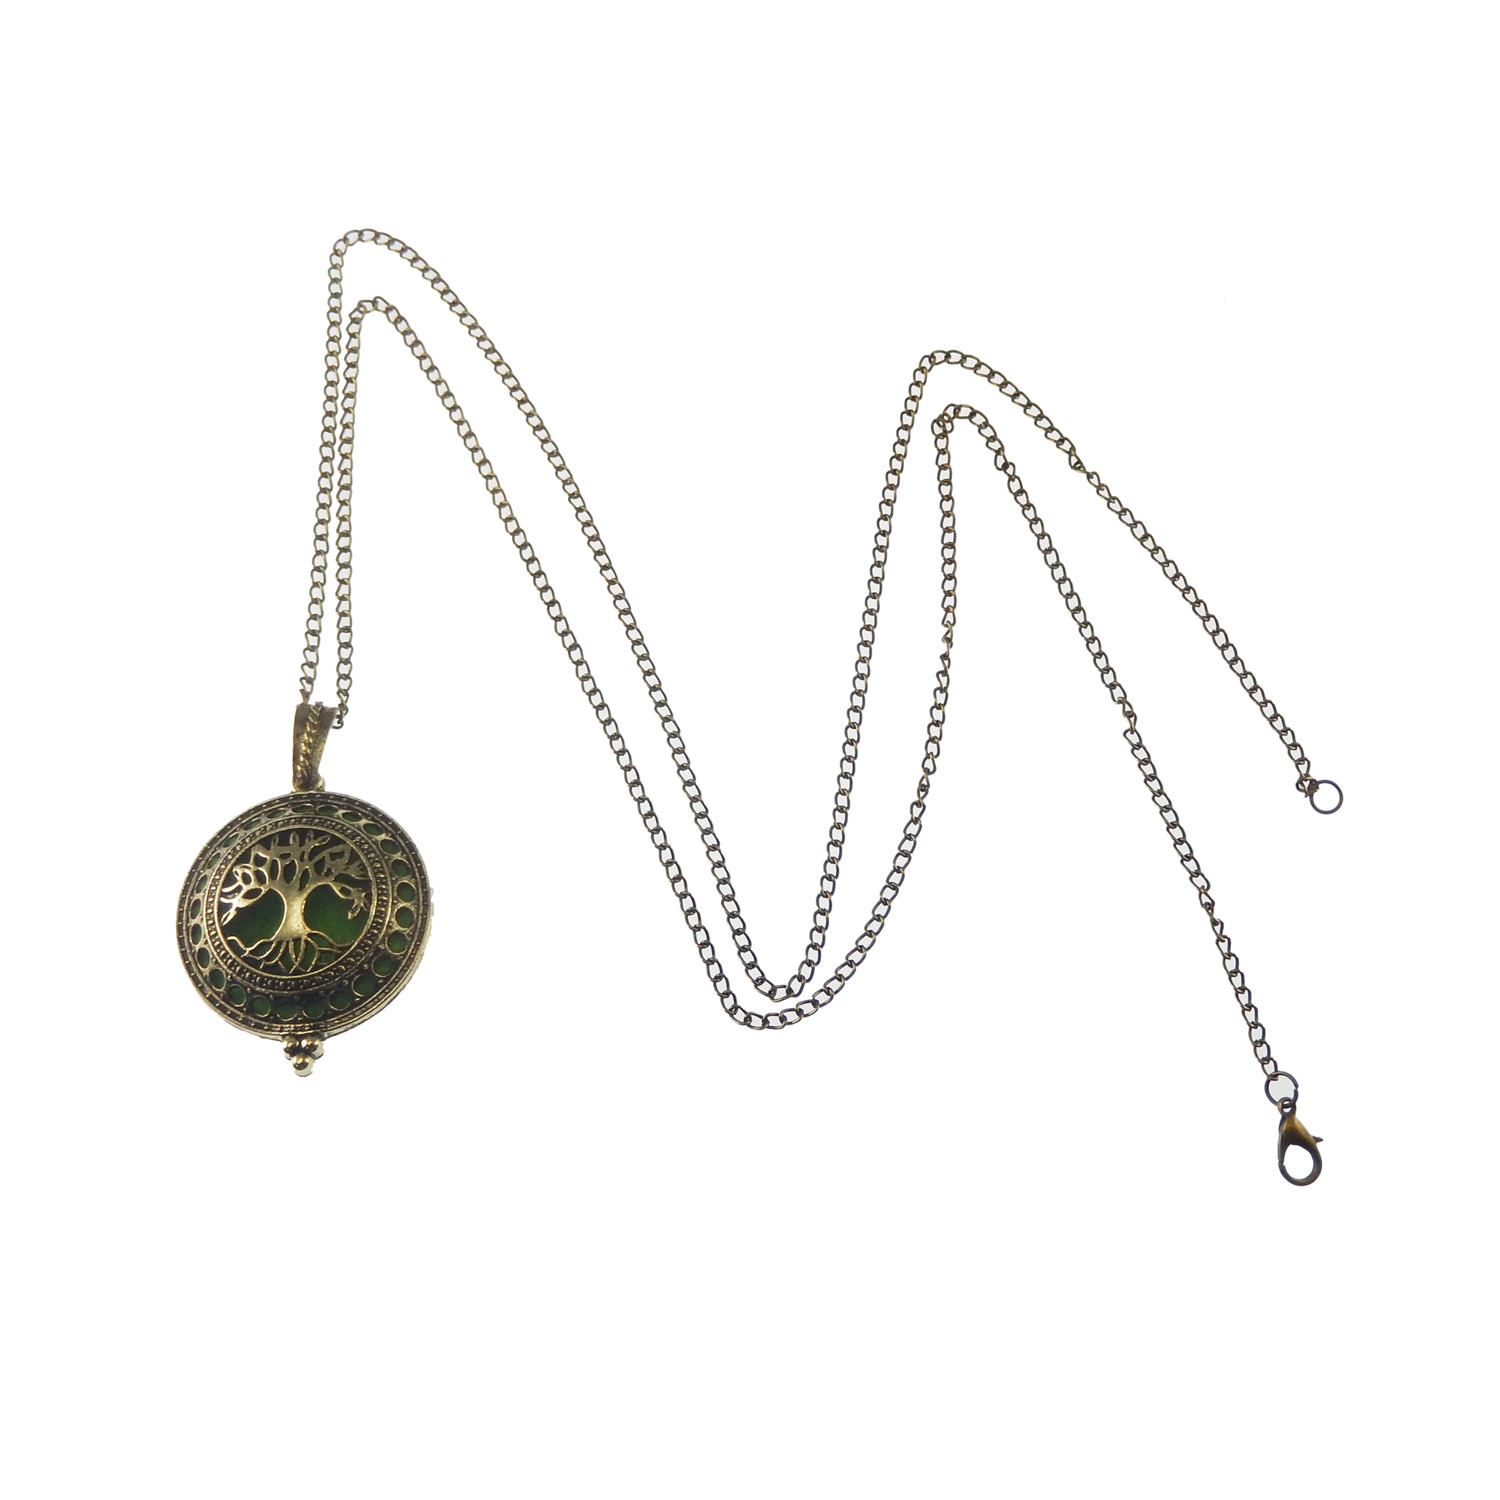 70cm Silver Round Hollowed Lockets Necklace Pendants Aromatherapy Oil Diffuser